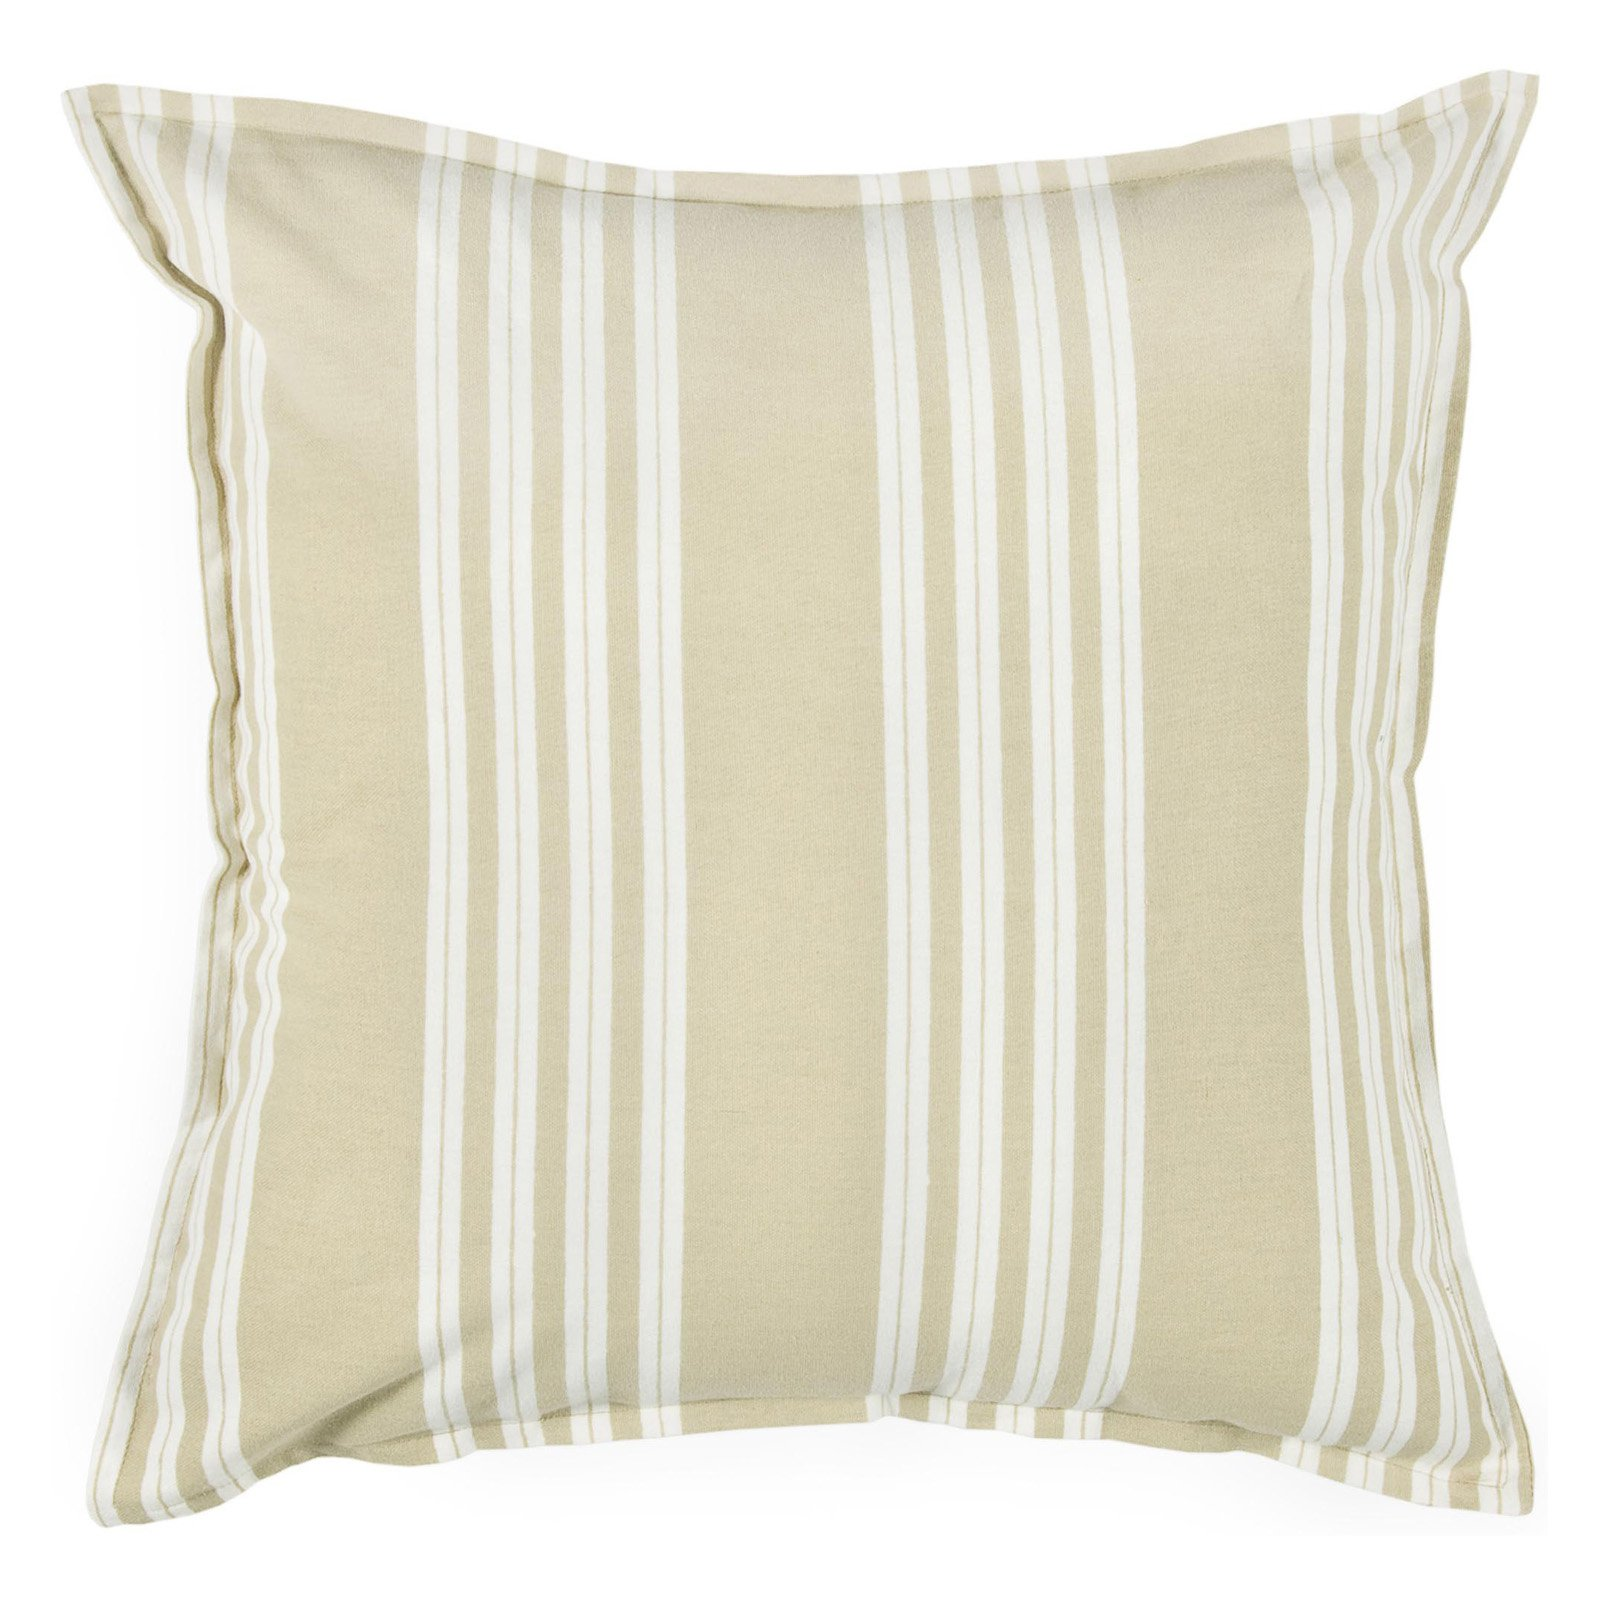 "Rizzy Home stripe18"" x 18""Cotton decorative filled pillow"